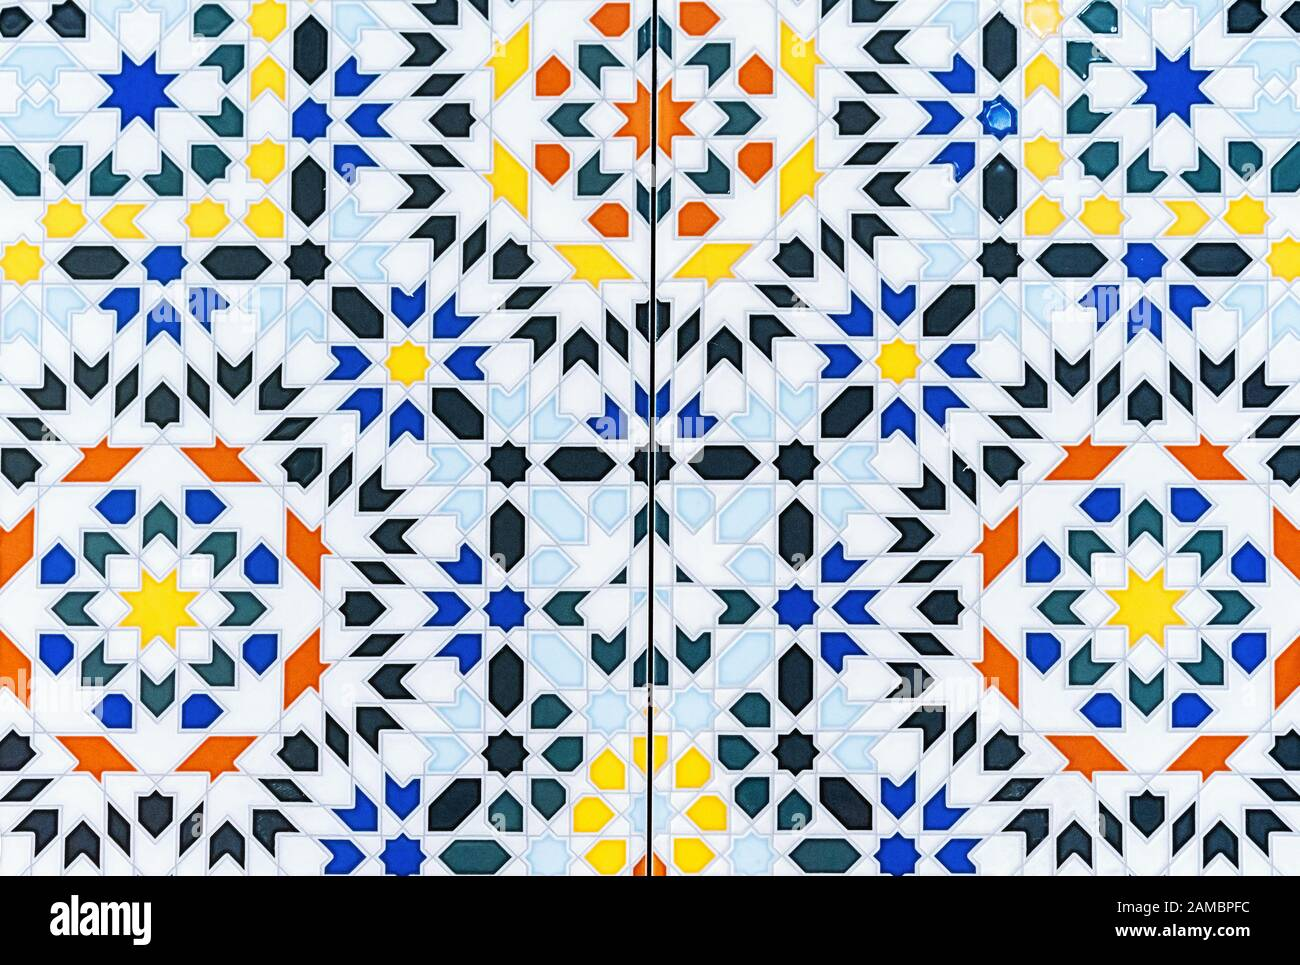 https www alamy com ceramic tiles with bright patterns porcelain tile with a multi colored pattern image339549264 html